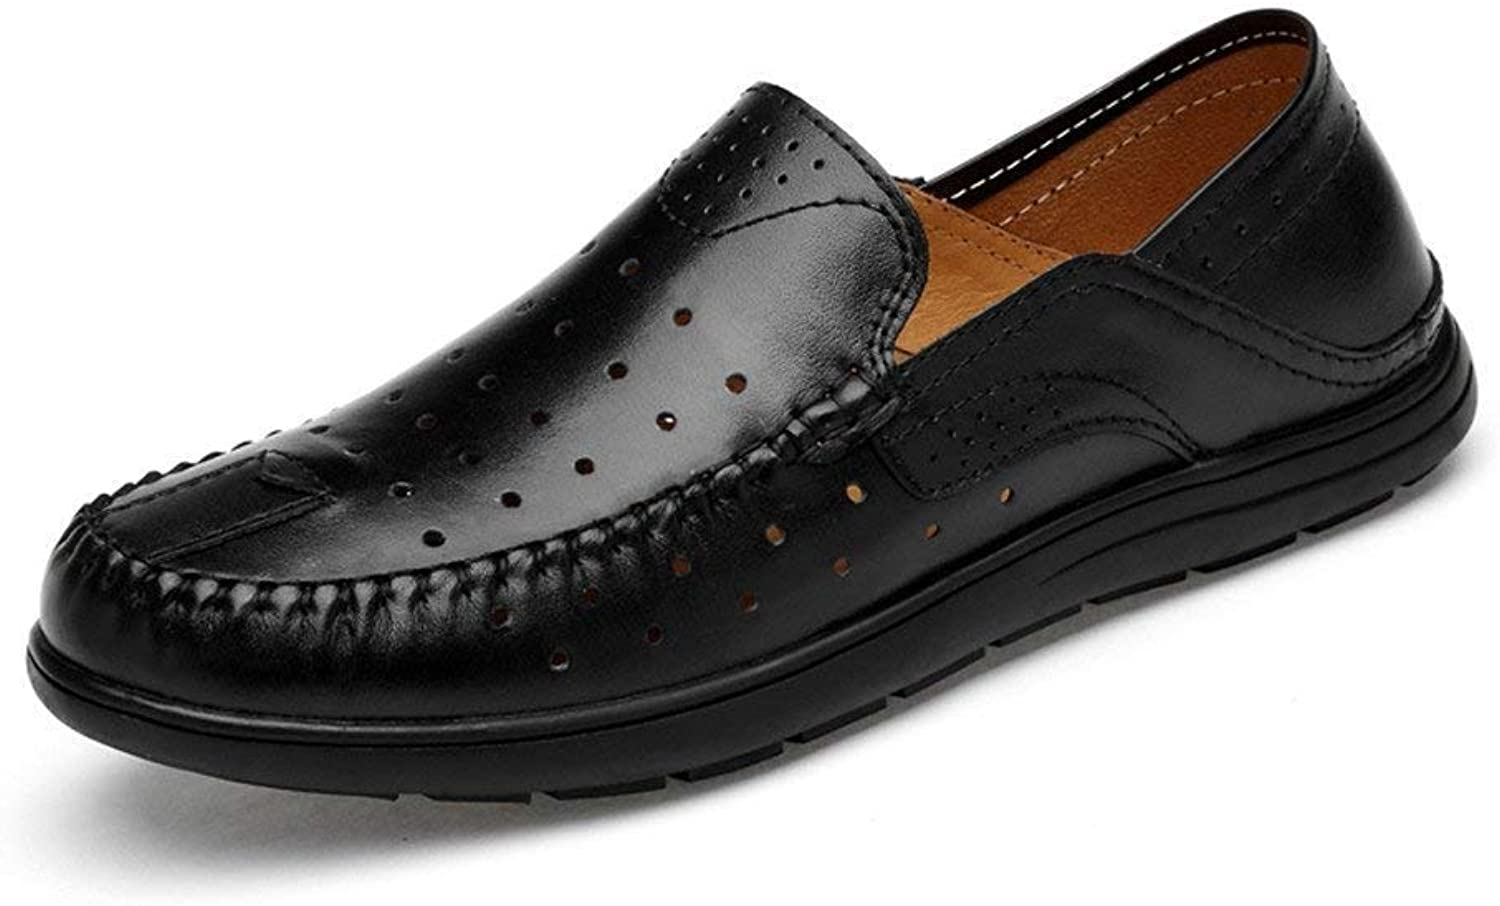 Oudan Men's Moccasins shoes, Men Driving Penny Loafers Patch Vamp Slip-on Casual Boot Moccasins Soft Rubber Sole (color  Hollwo Black, Size  46 EU) (color   Hollwo Black, Size   43 EU)